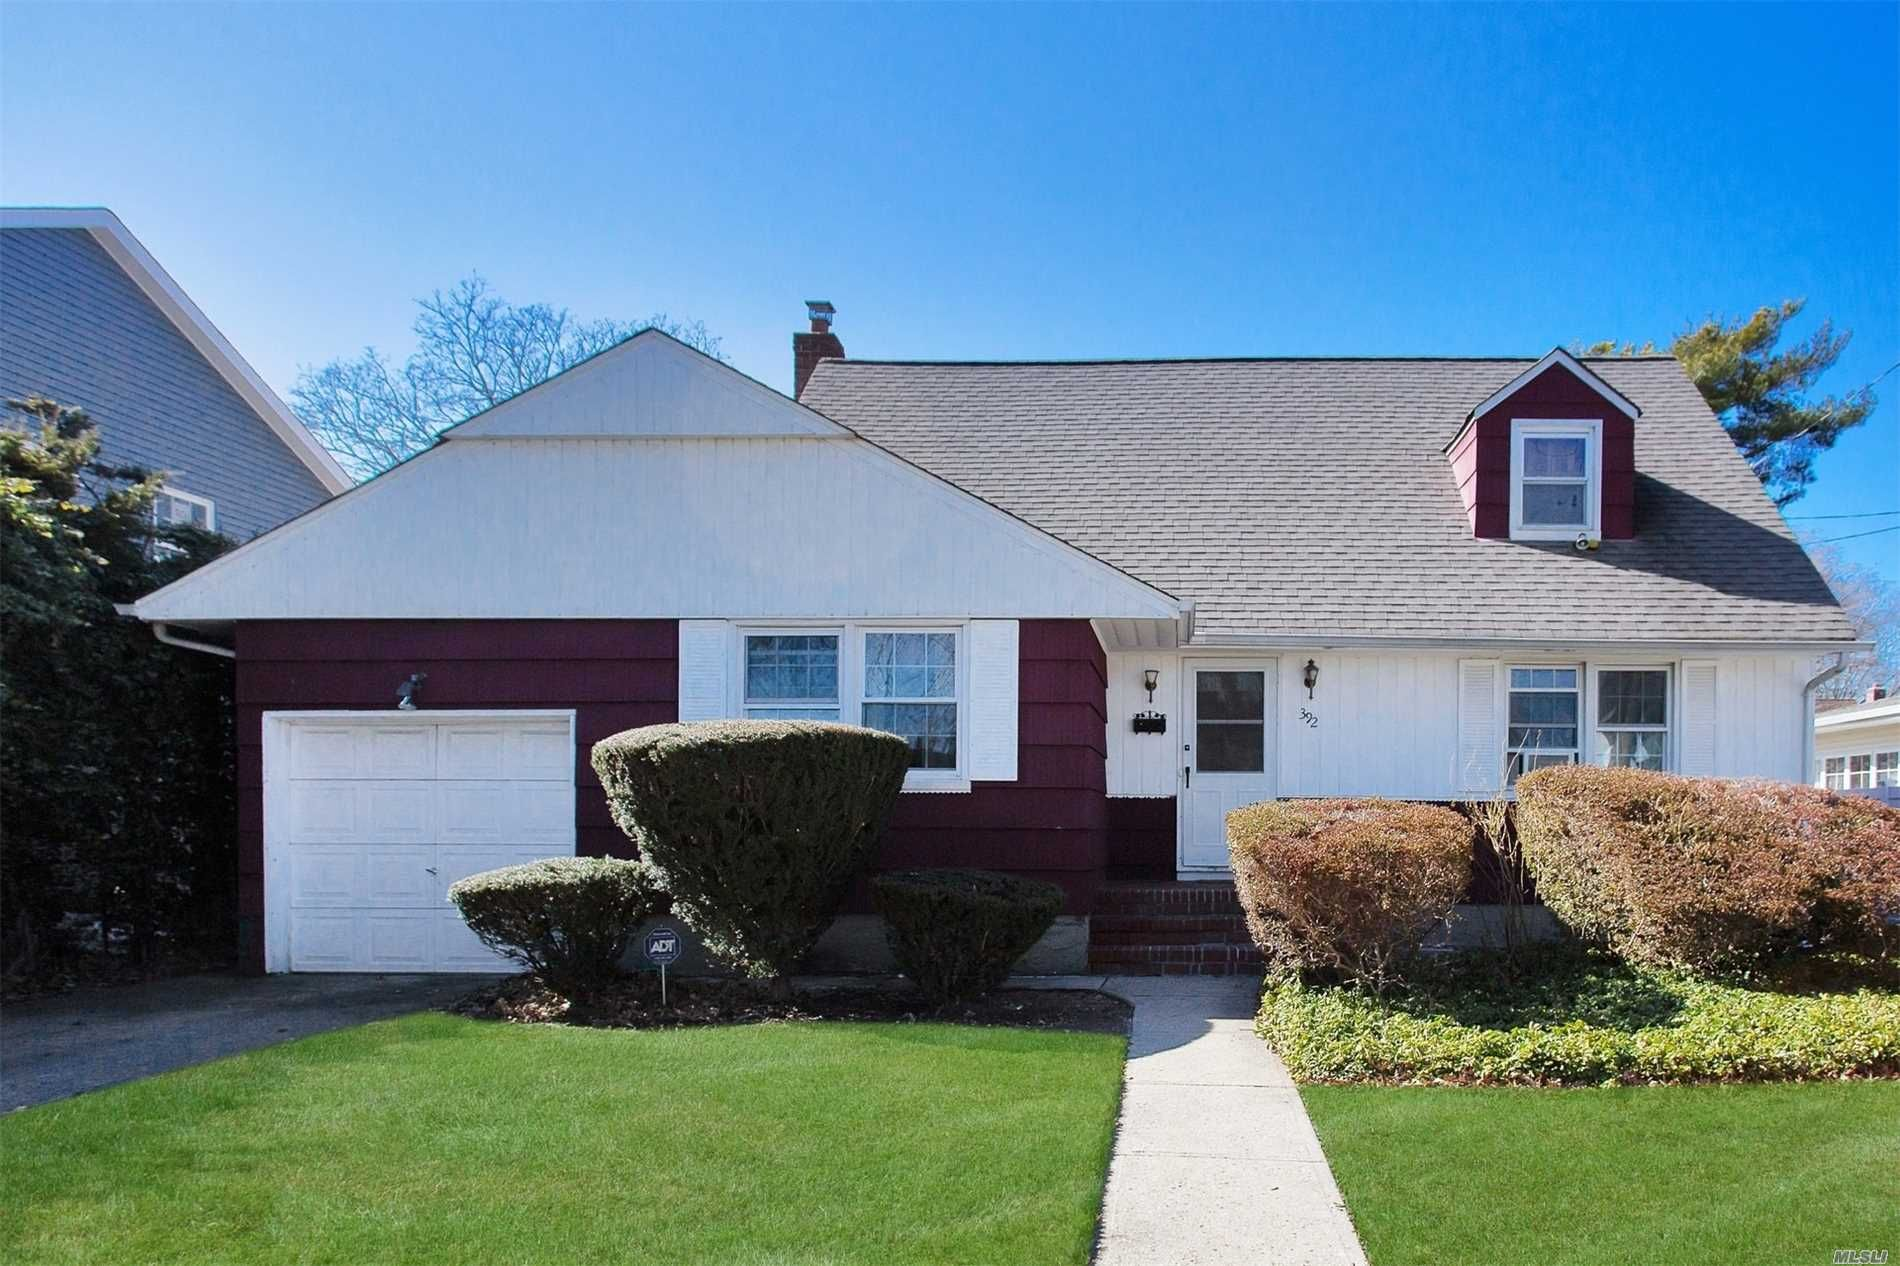 392 Fenimore Ave, Uniondale, NY 11553 - 4 Bed, 2 Bath Single-Family Home -  MLS #*1338569 - 20 Photos | Trulia